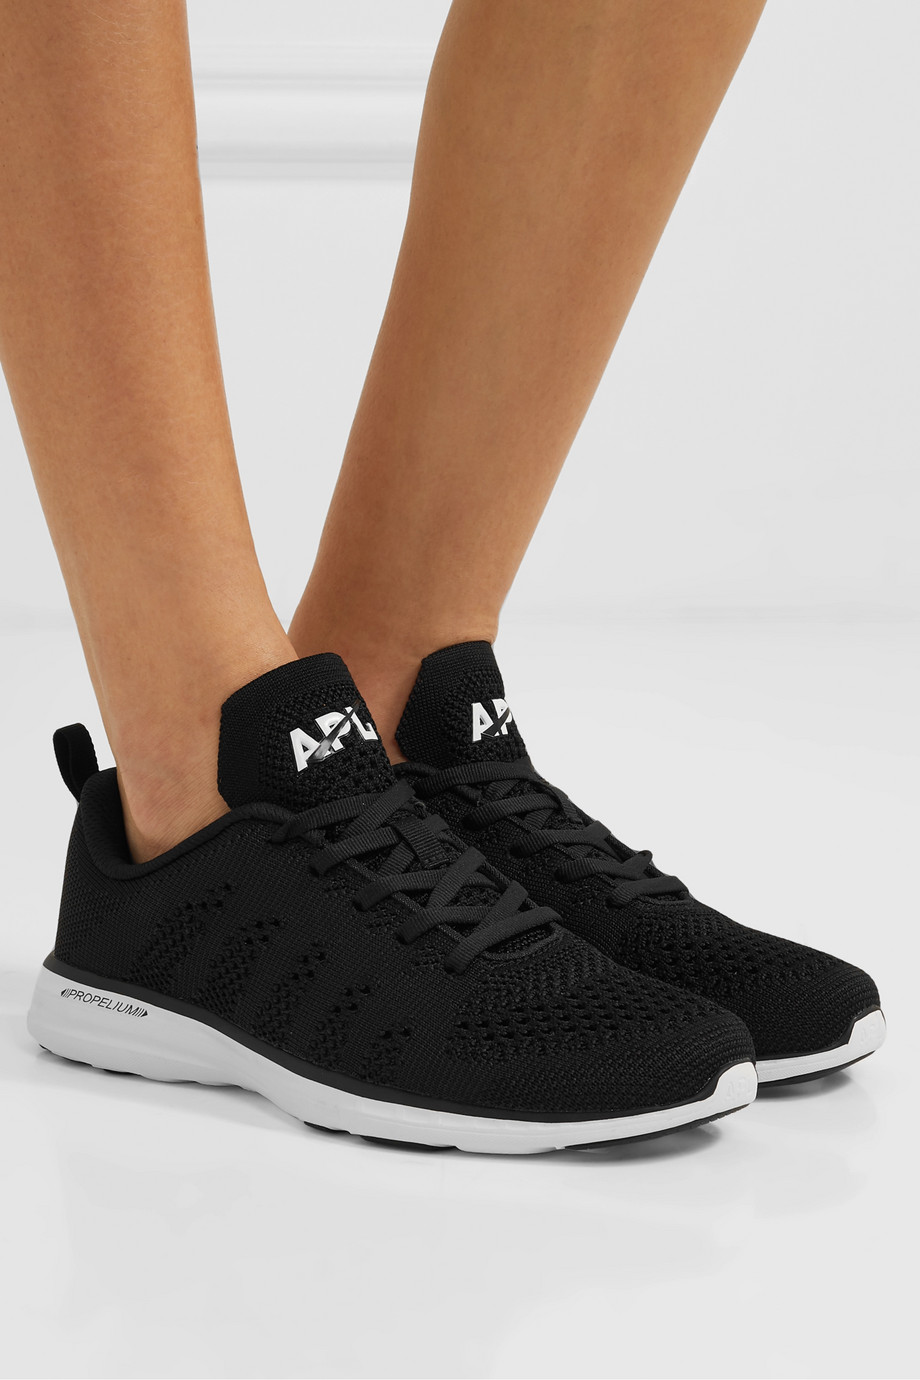 APL Athletic Propulsion Labs TechLoom Pro mesh sneakers